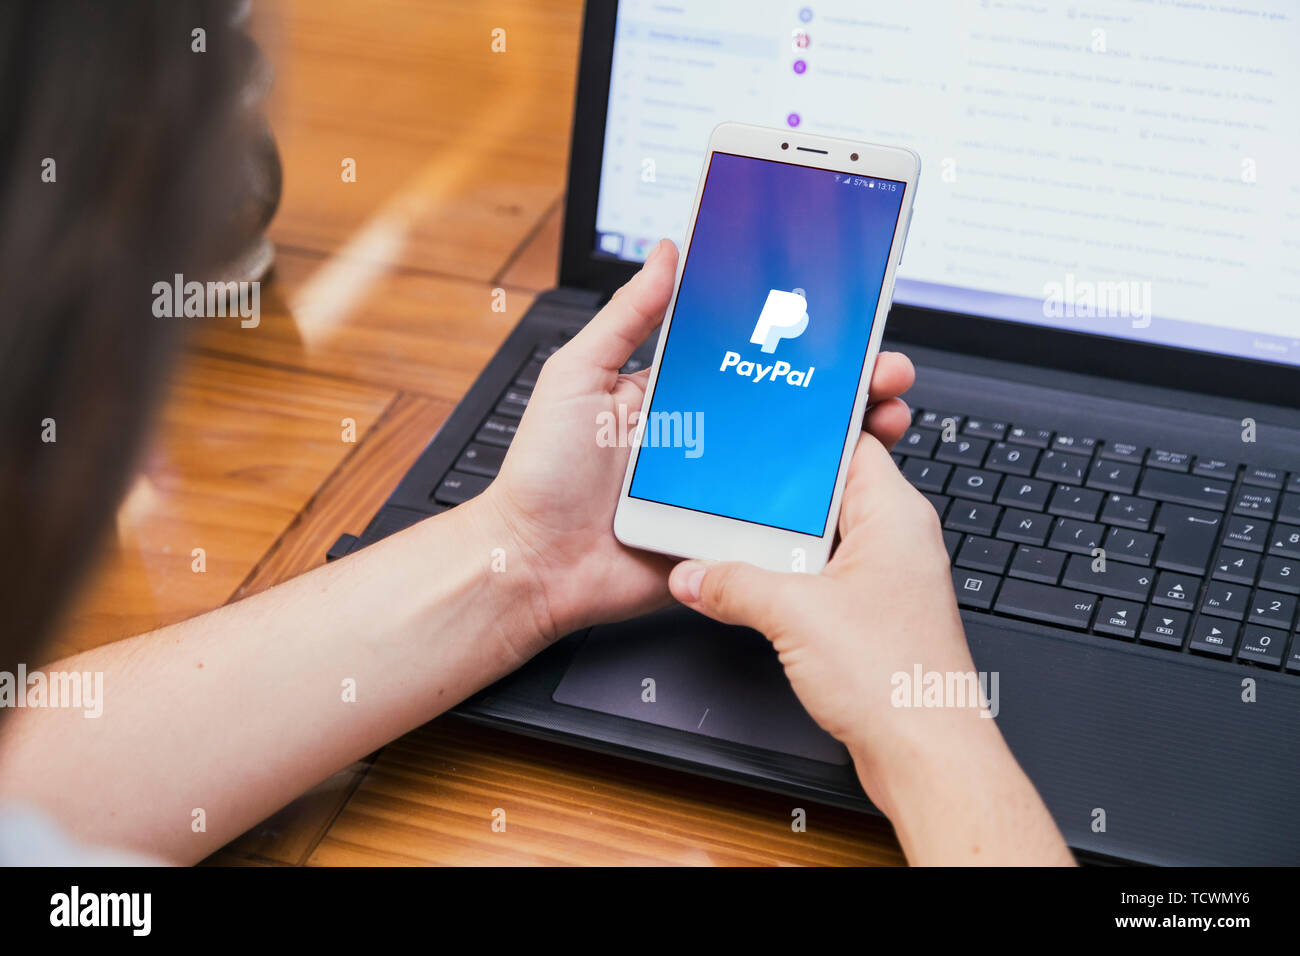 ROSARIO, ARGENTINA - FEBRUARY 16, 2019: Paypal app on the screen of smartphone.Girl in front of a laptop with cell phone in her hands. Logotype. - Stock Image